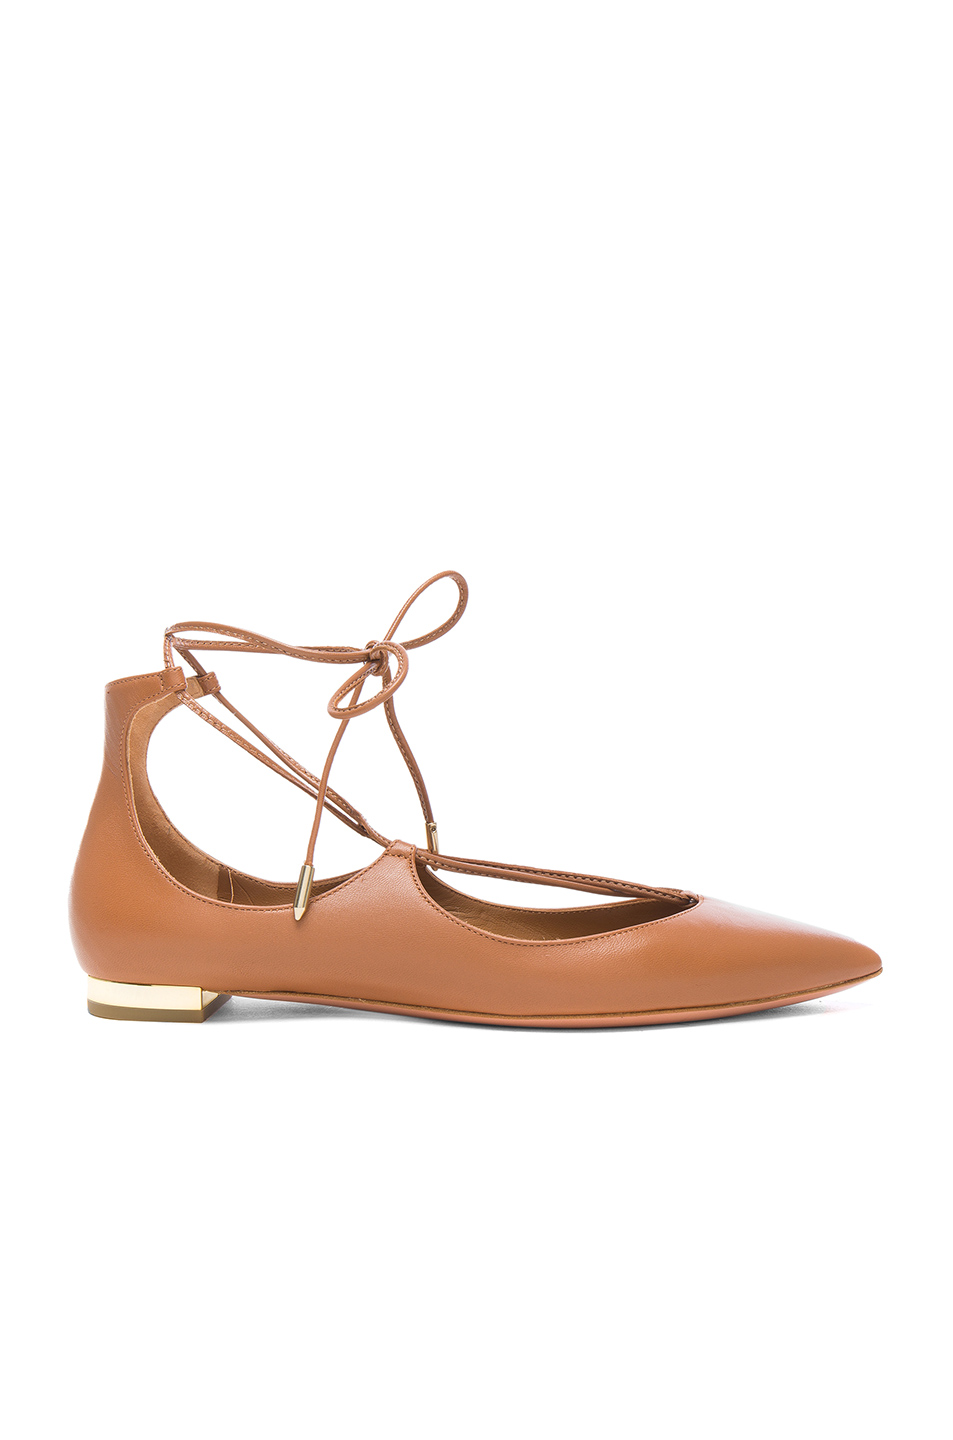 Aquazzura Leather Christy Flats in Brown